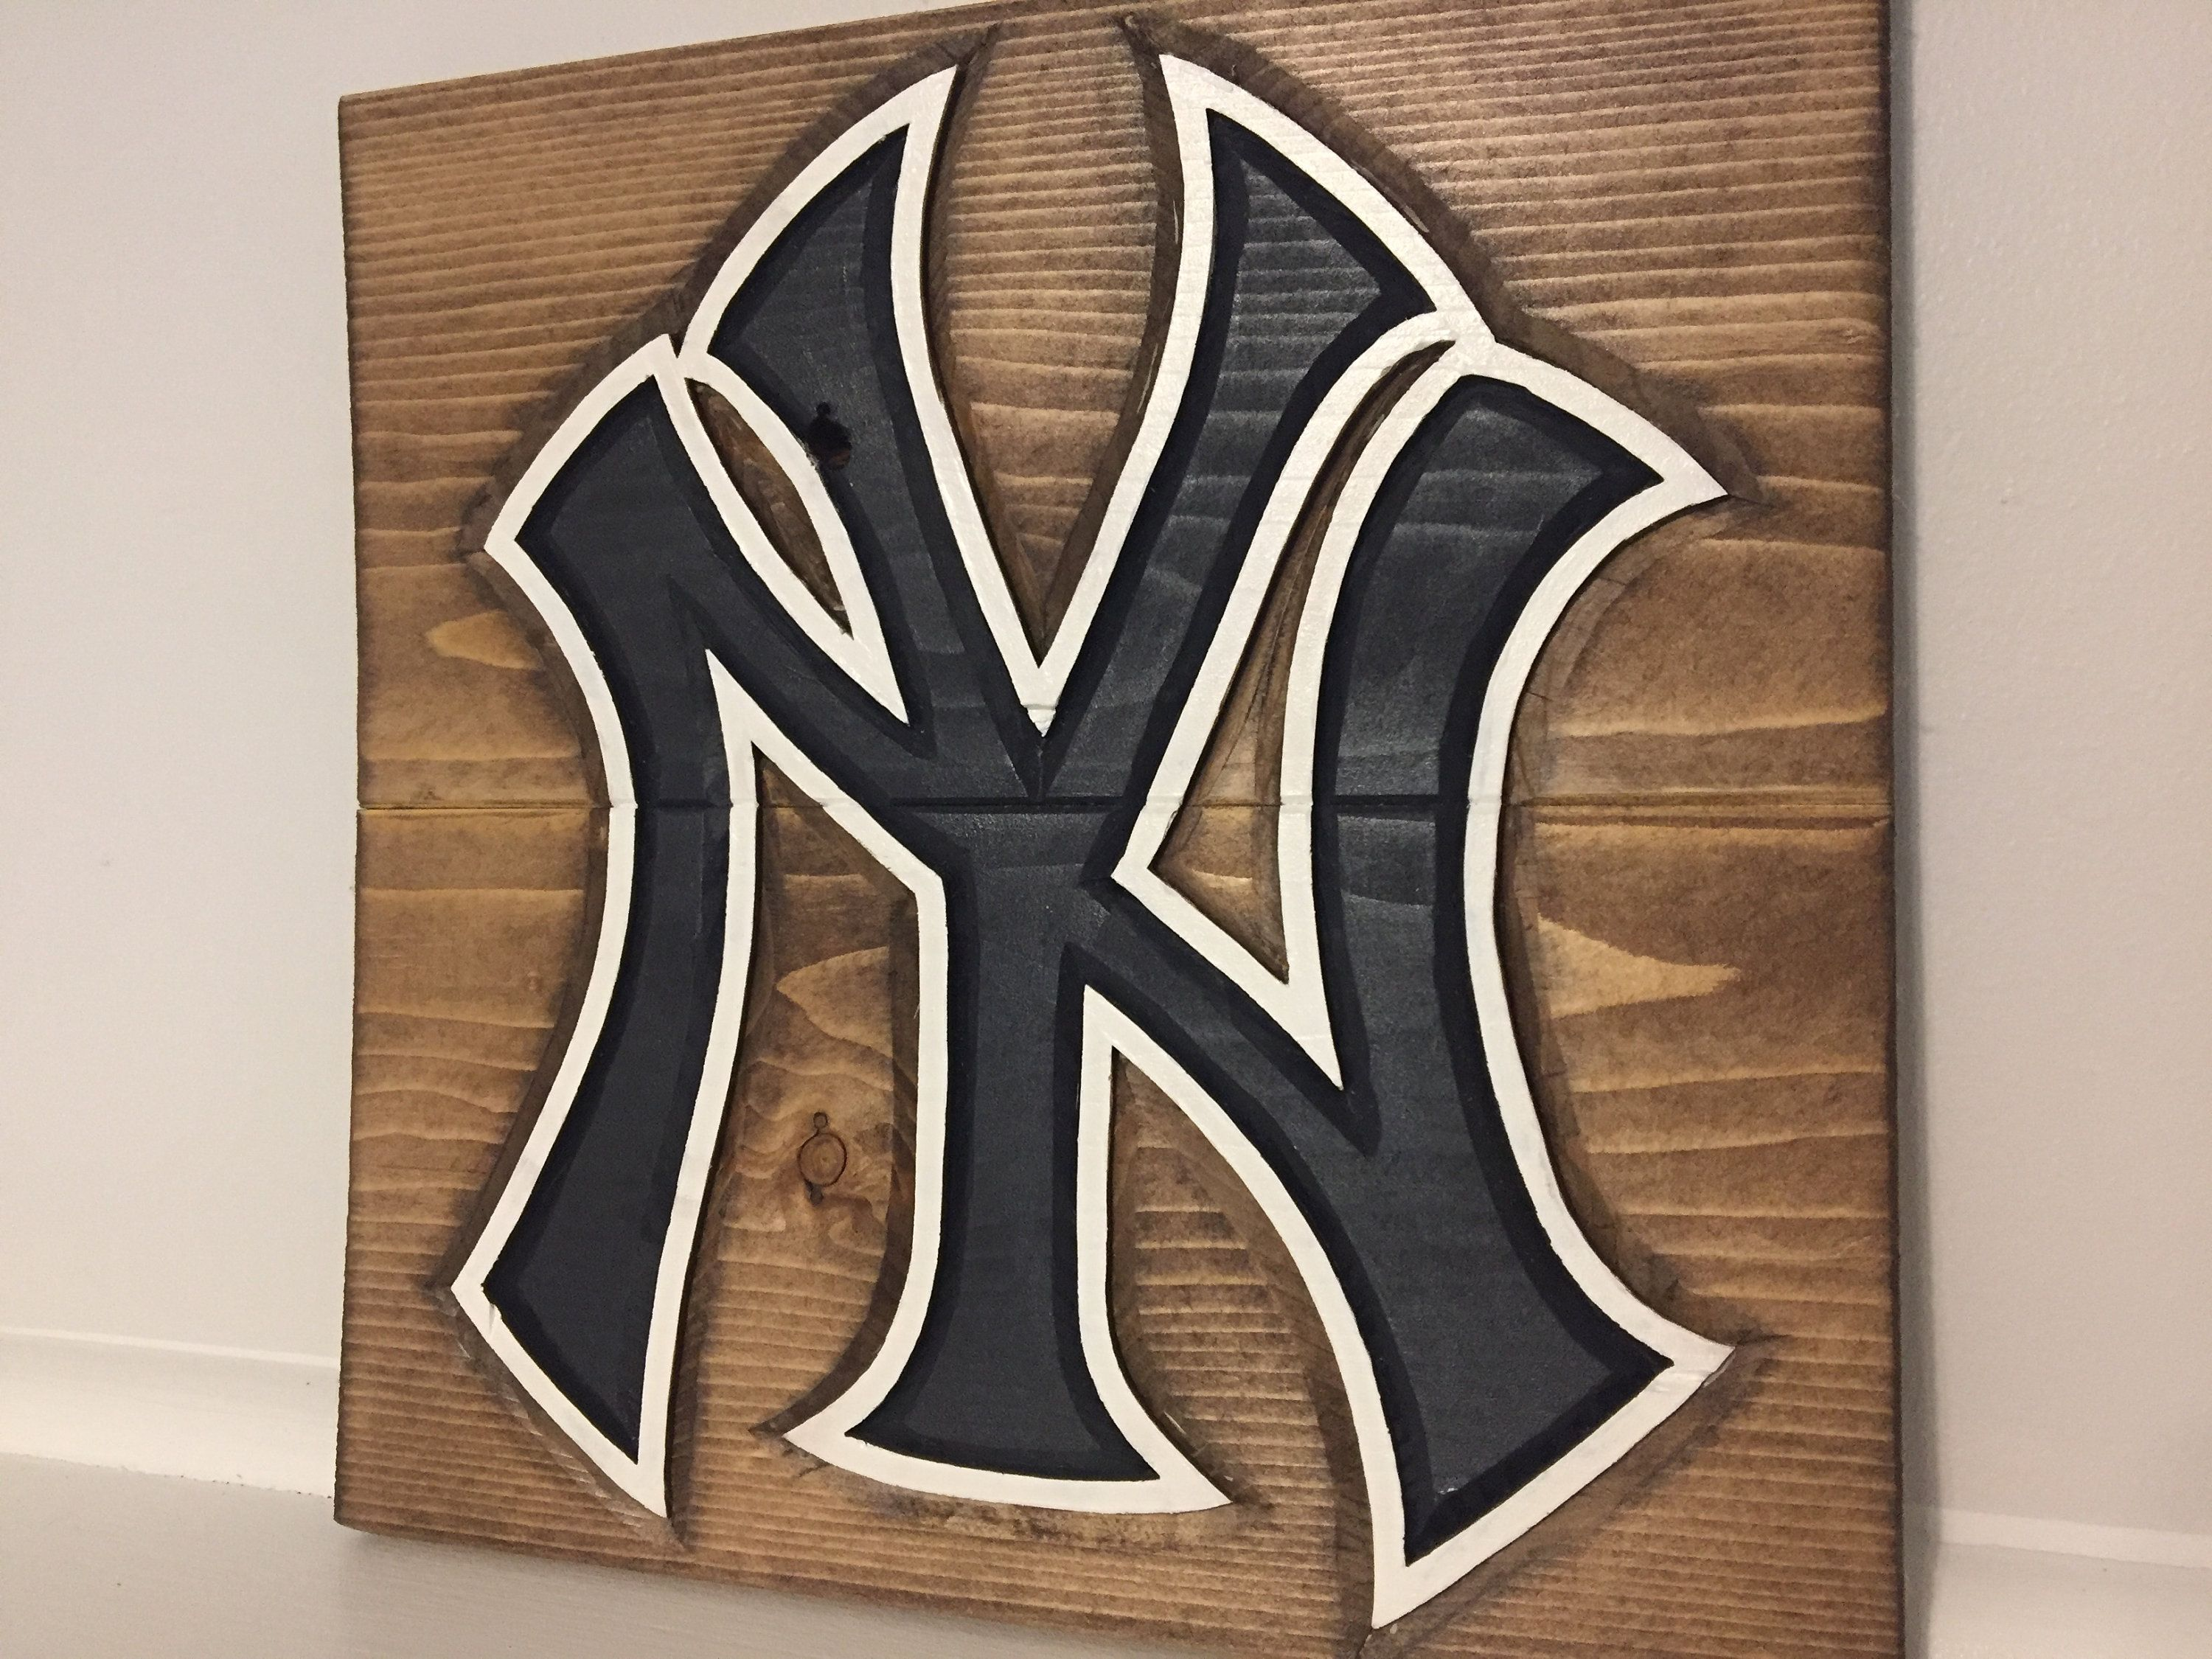 New York Yankees Custom Art Hand Carved And Painted On Wood By Anzalonewoodcrafts On Etsy Custom Art Painting On Wood New York Yankees